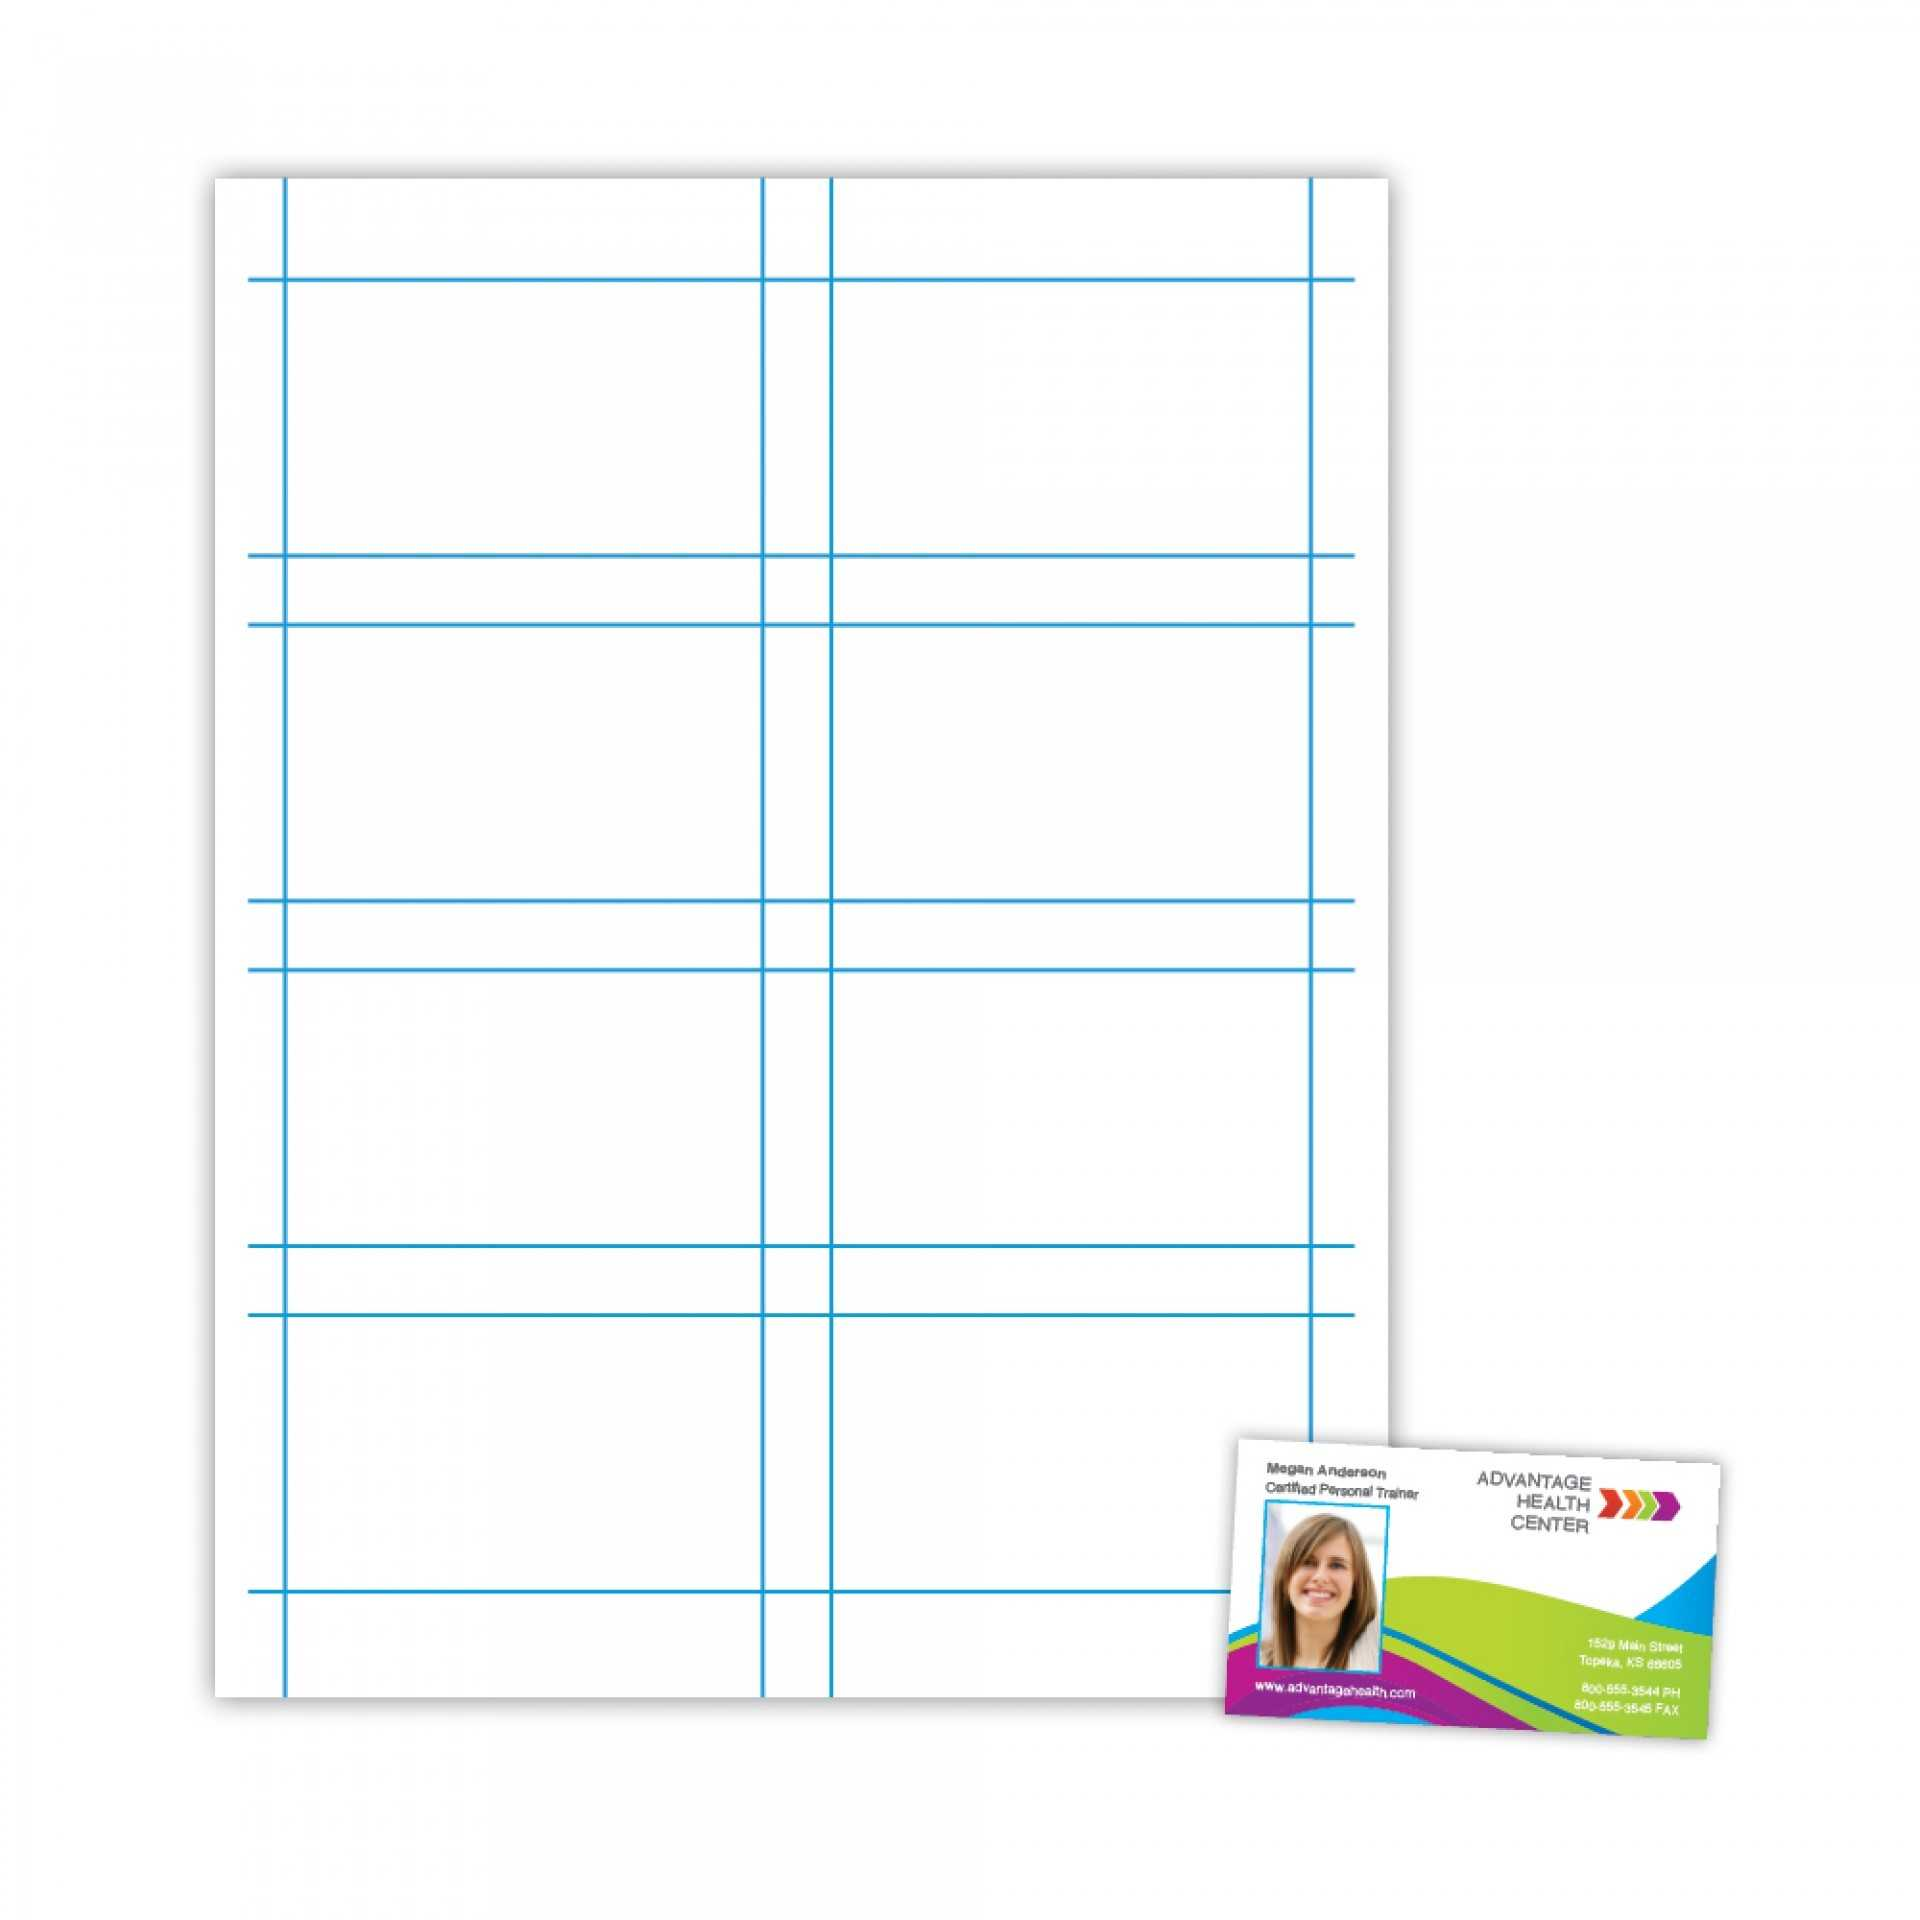 015 Blank Business Card Template Microsoft Word Free Throughout Free Editable Printable Business Card Templates